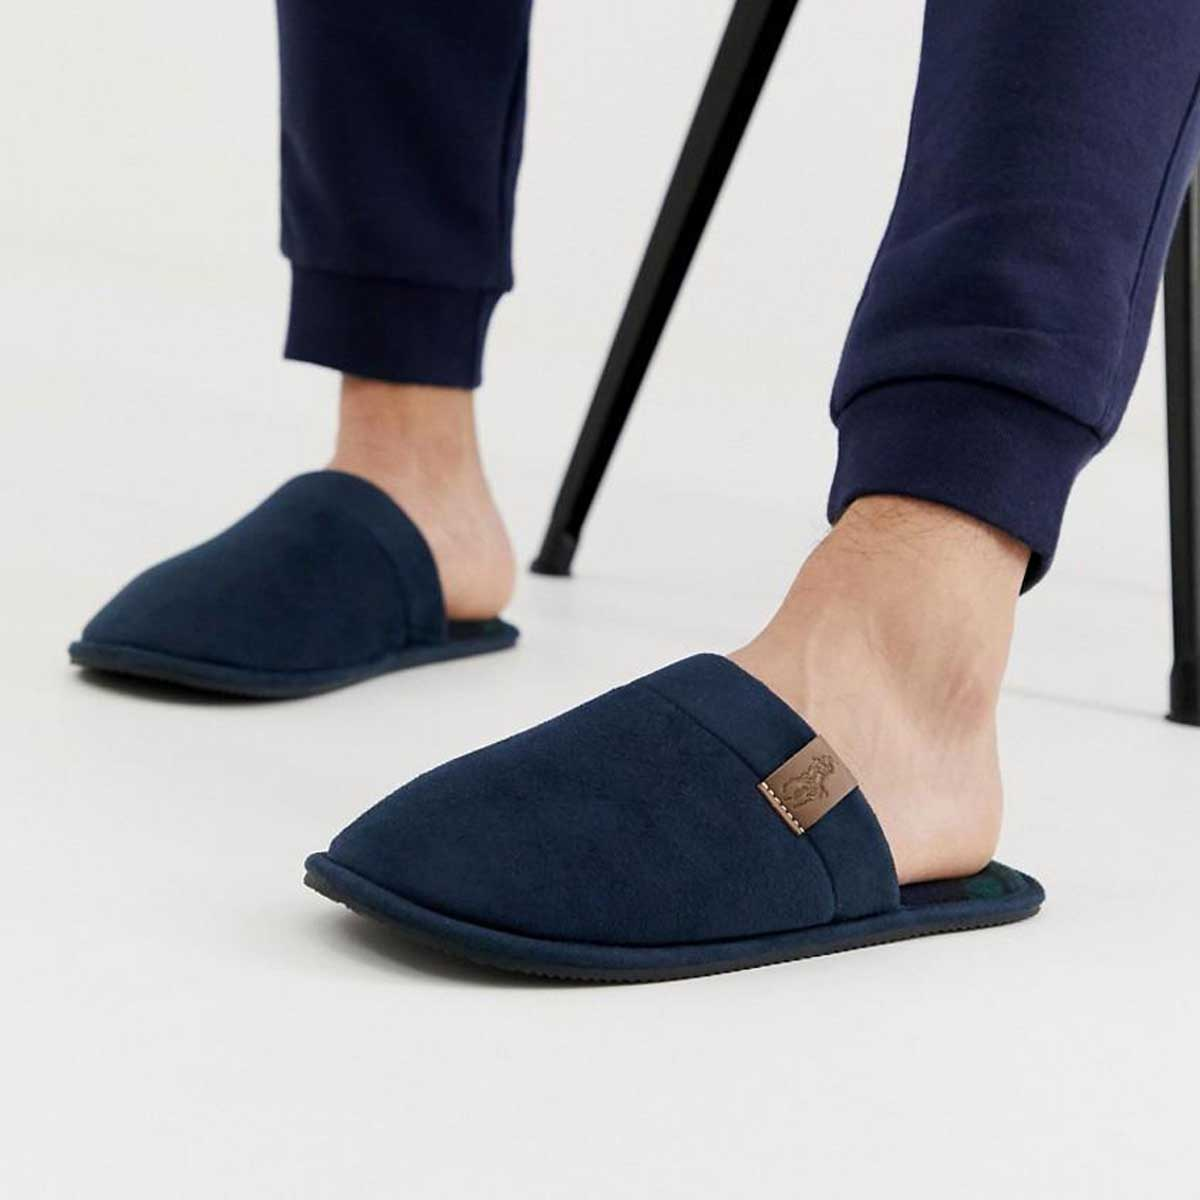 what shoes men should wear at home